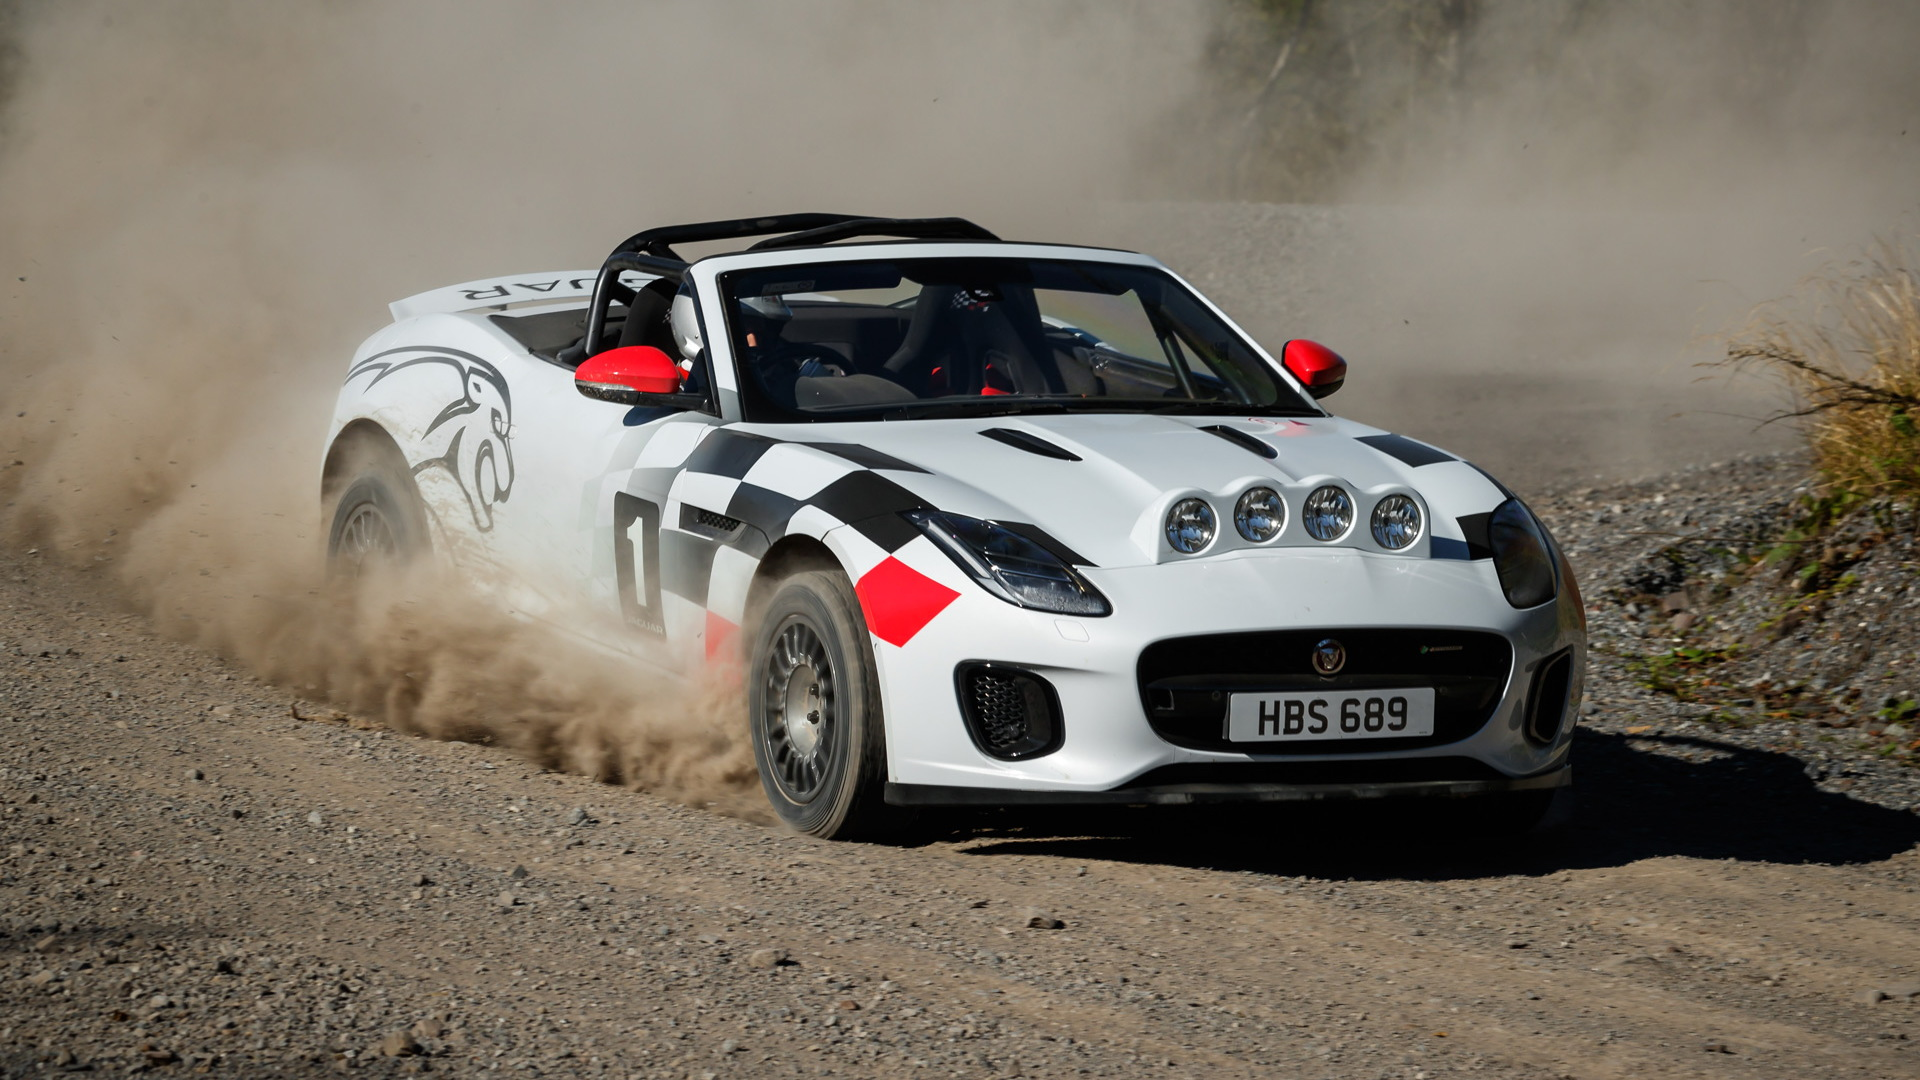 2018 Jaguar F-Type Convertible rally car